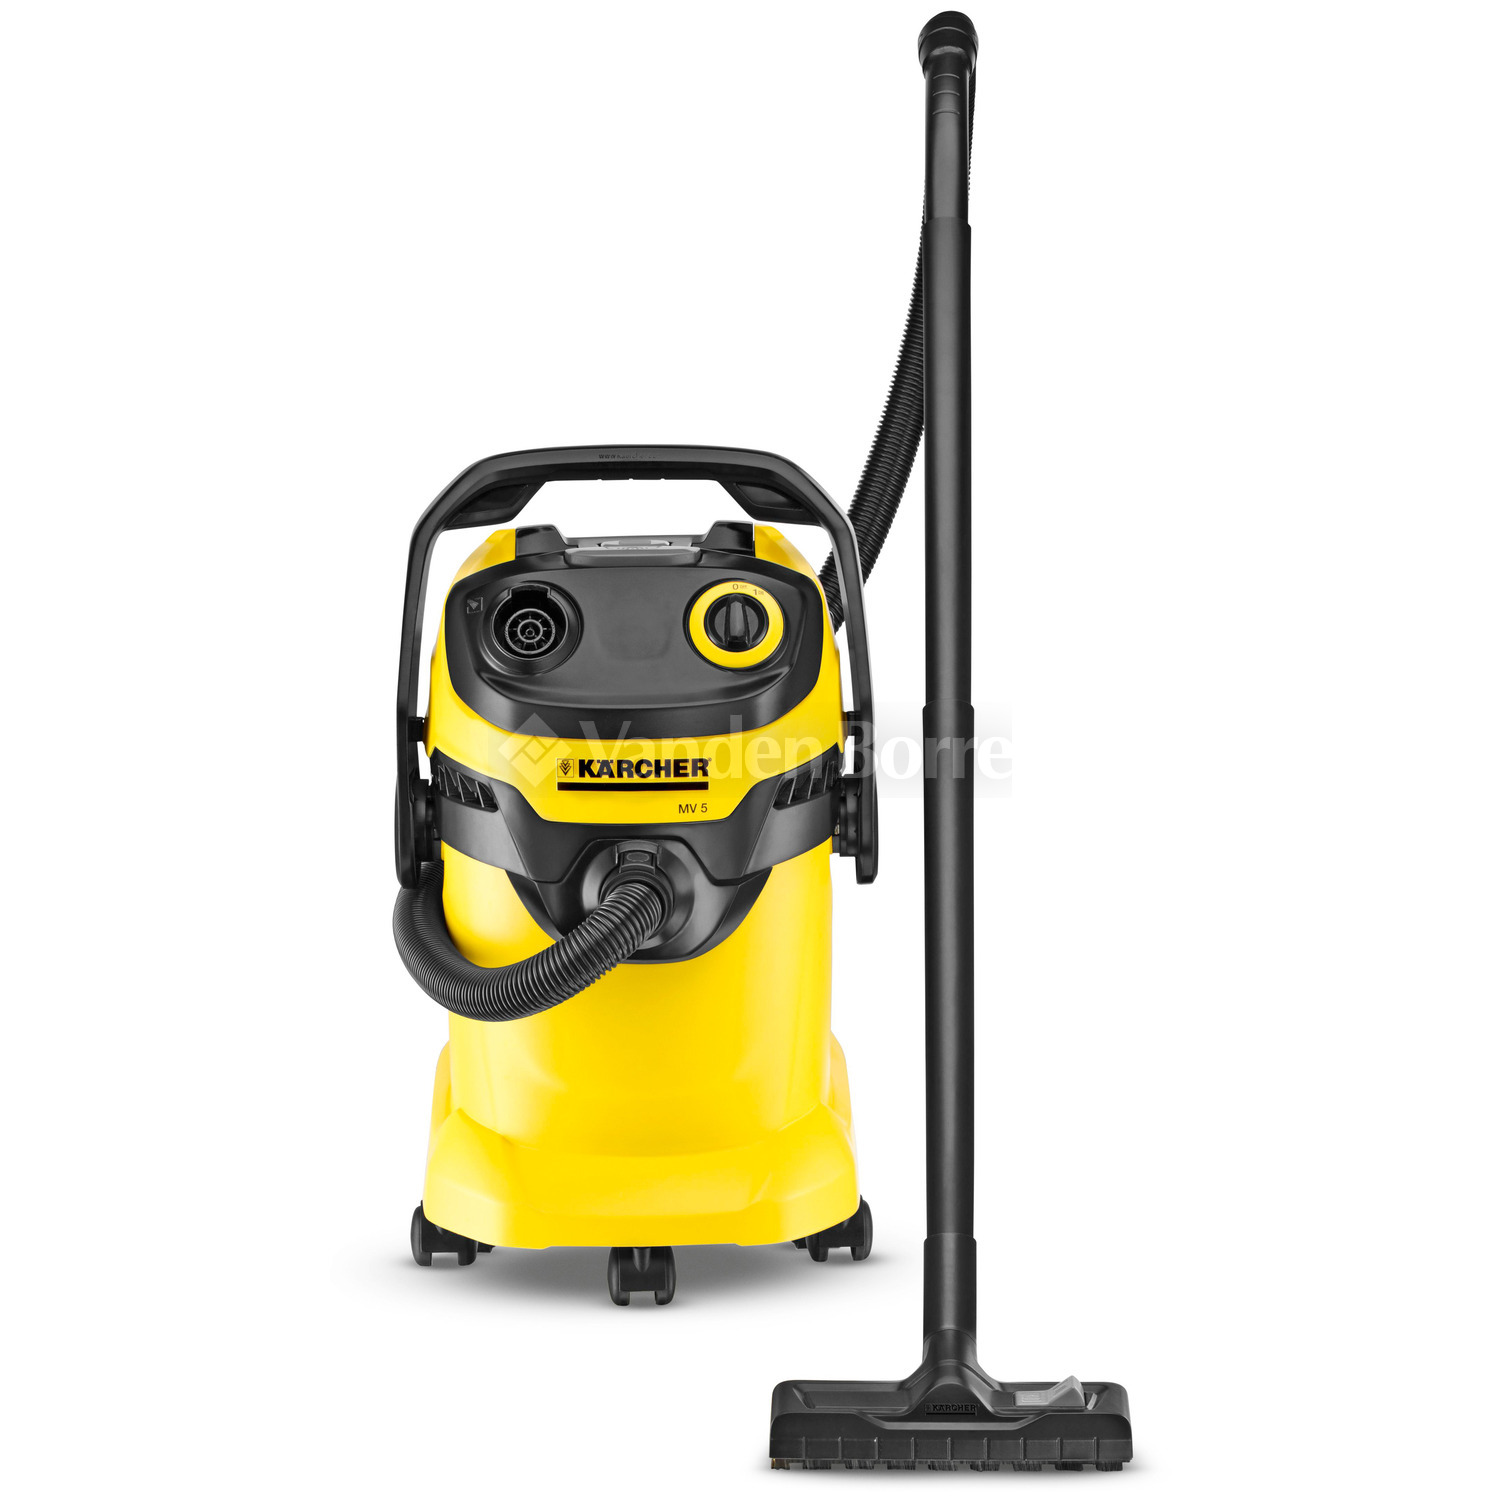 sac aspirateur karcher great nt sac aspirateur karcher nt. Black Bedroom Furniture Sets. Home Design Ideas